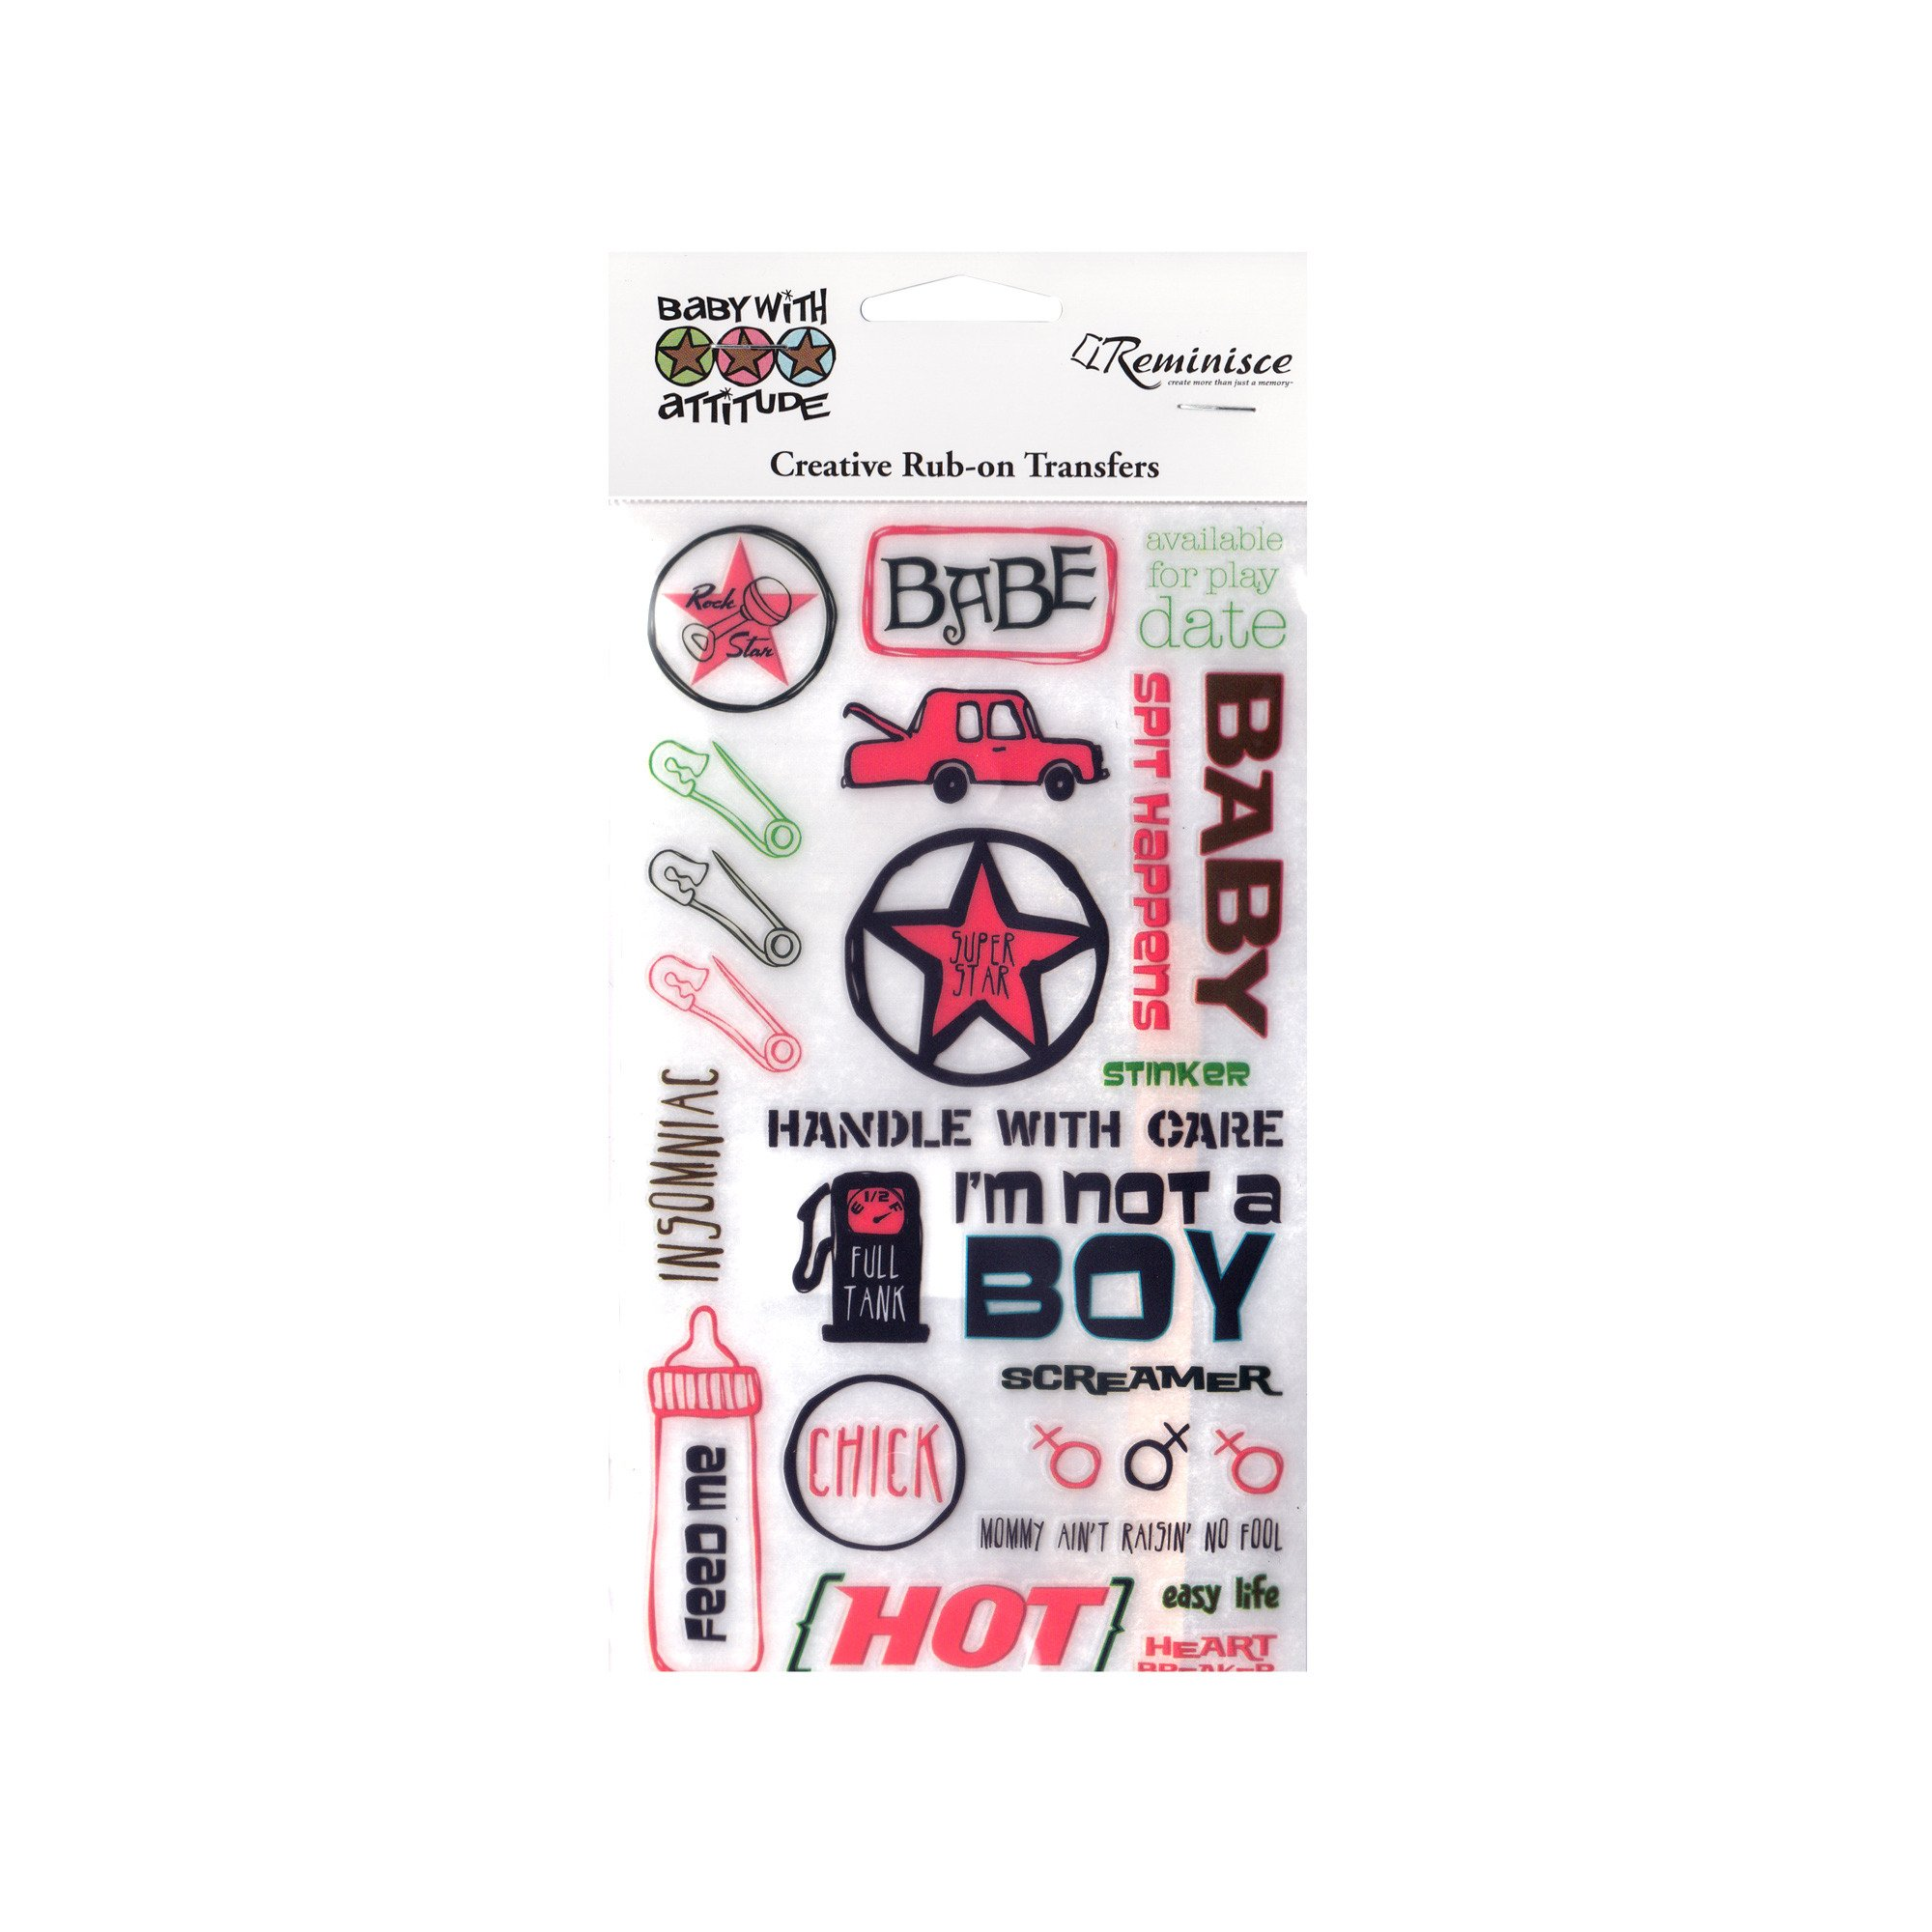 123-Wholesale - Set of 48 Baby with Attitude Rub-on Transfers - Scrapbooking Rub-ons by 123-Wholesale